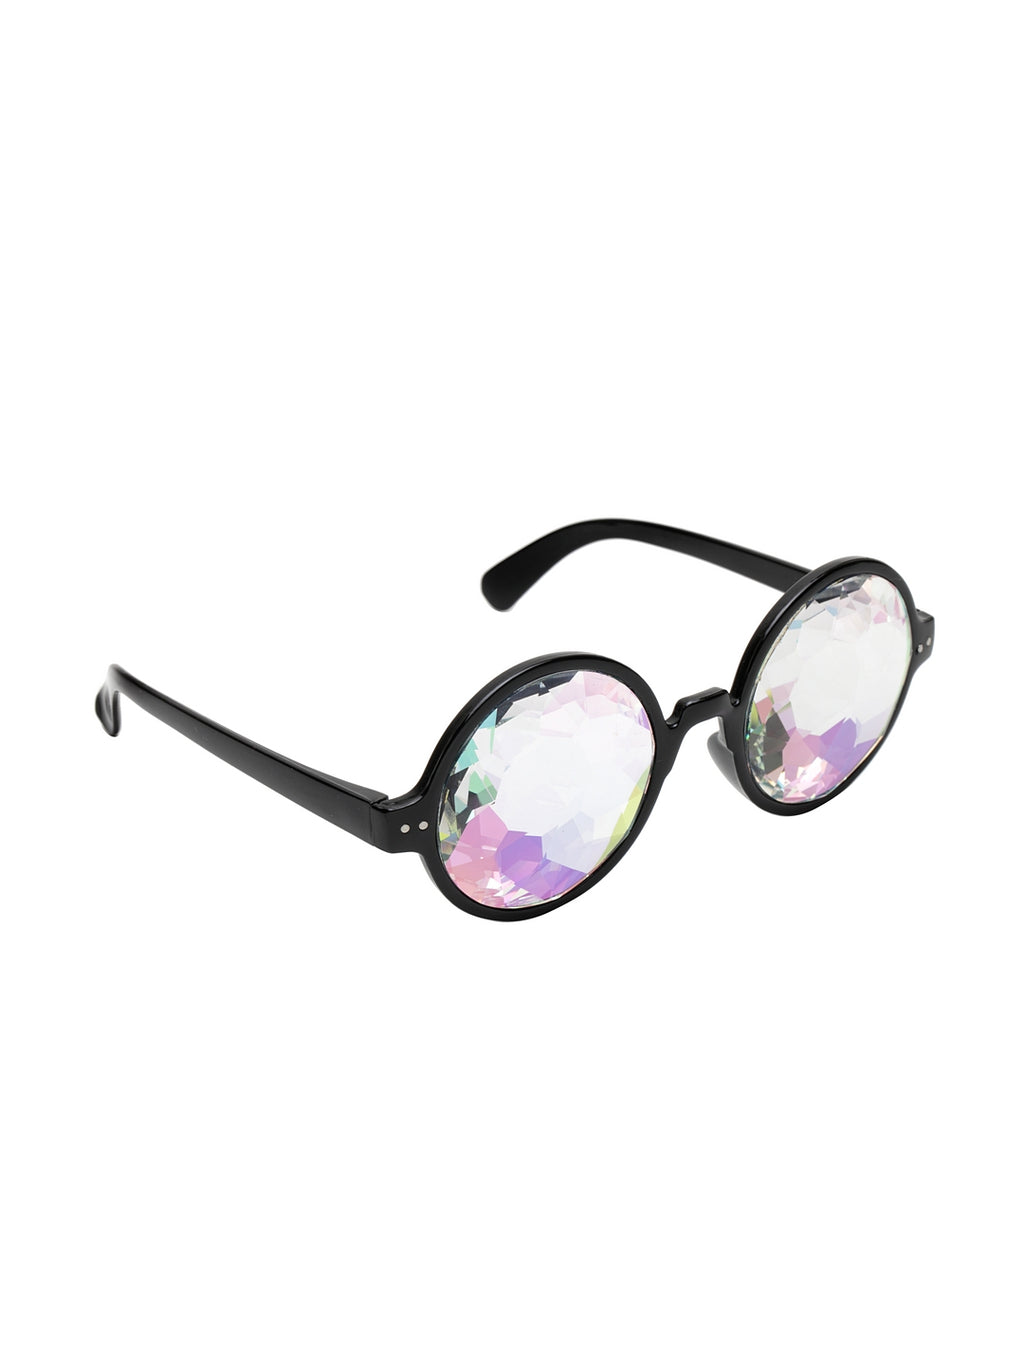 Avant-Garde Paris Diamond Lens Party Kaleidoscope Glasses Rave Prism Diffraction